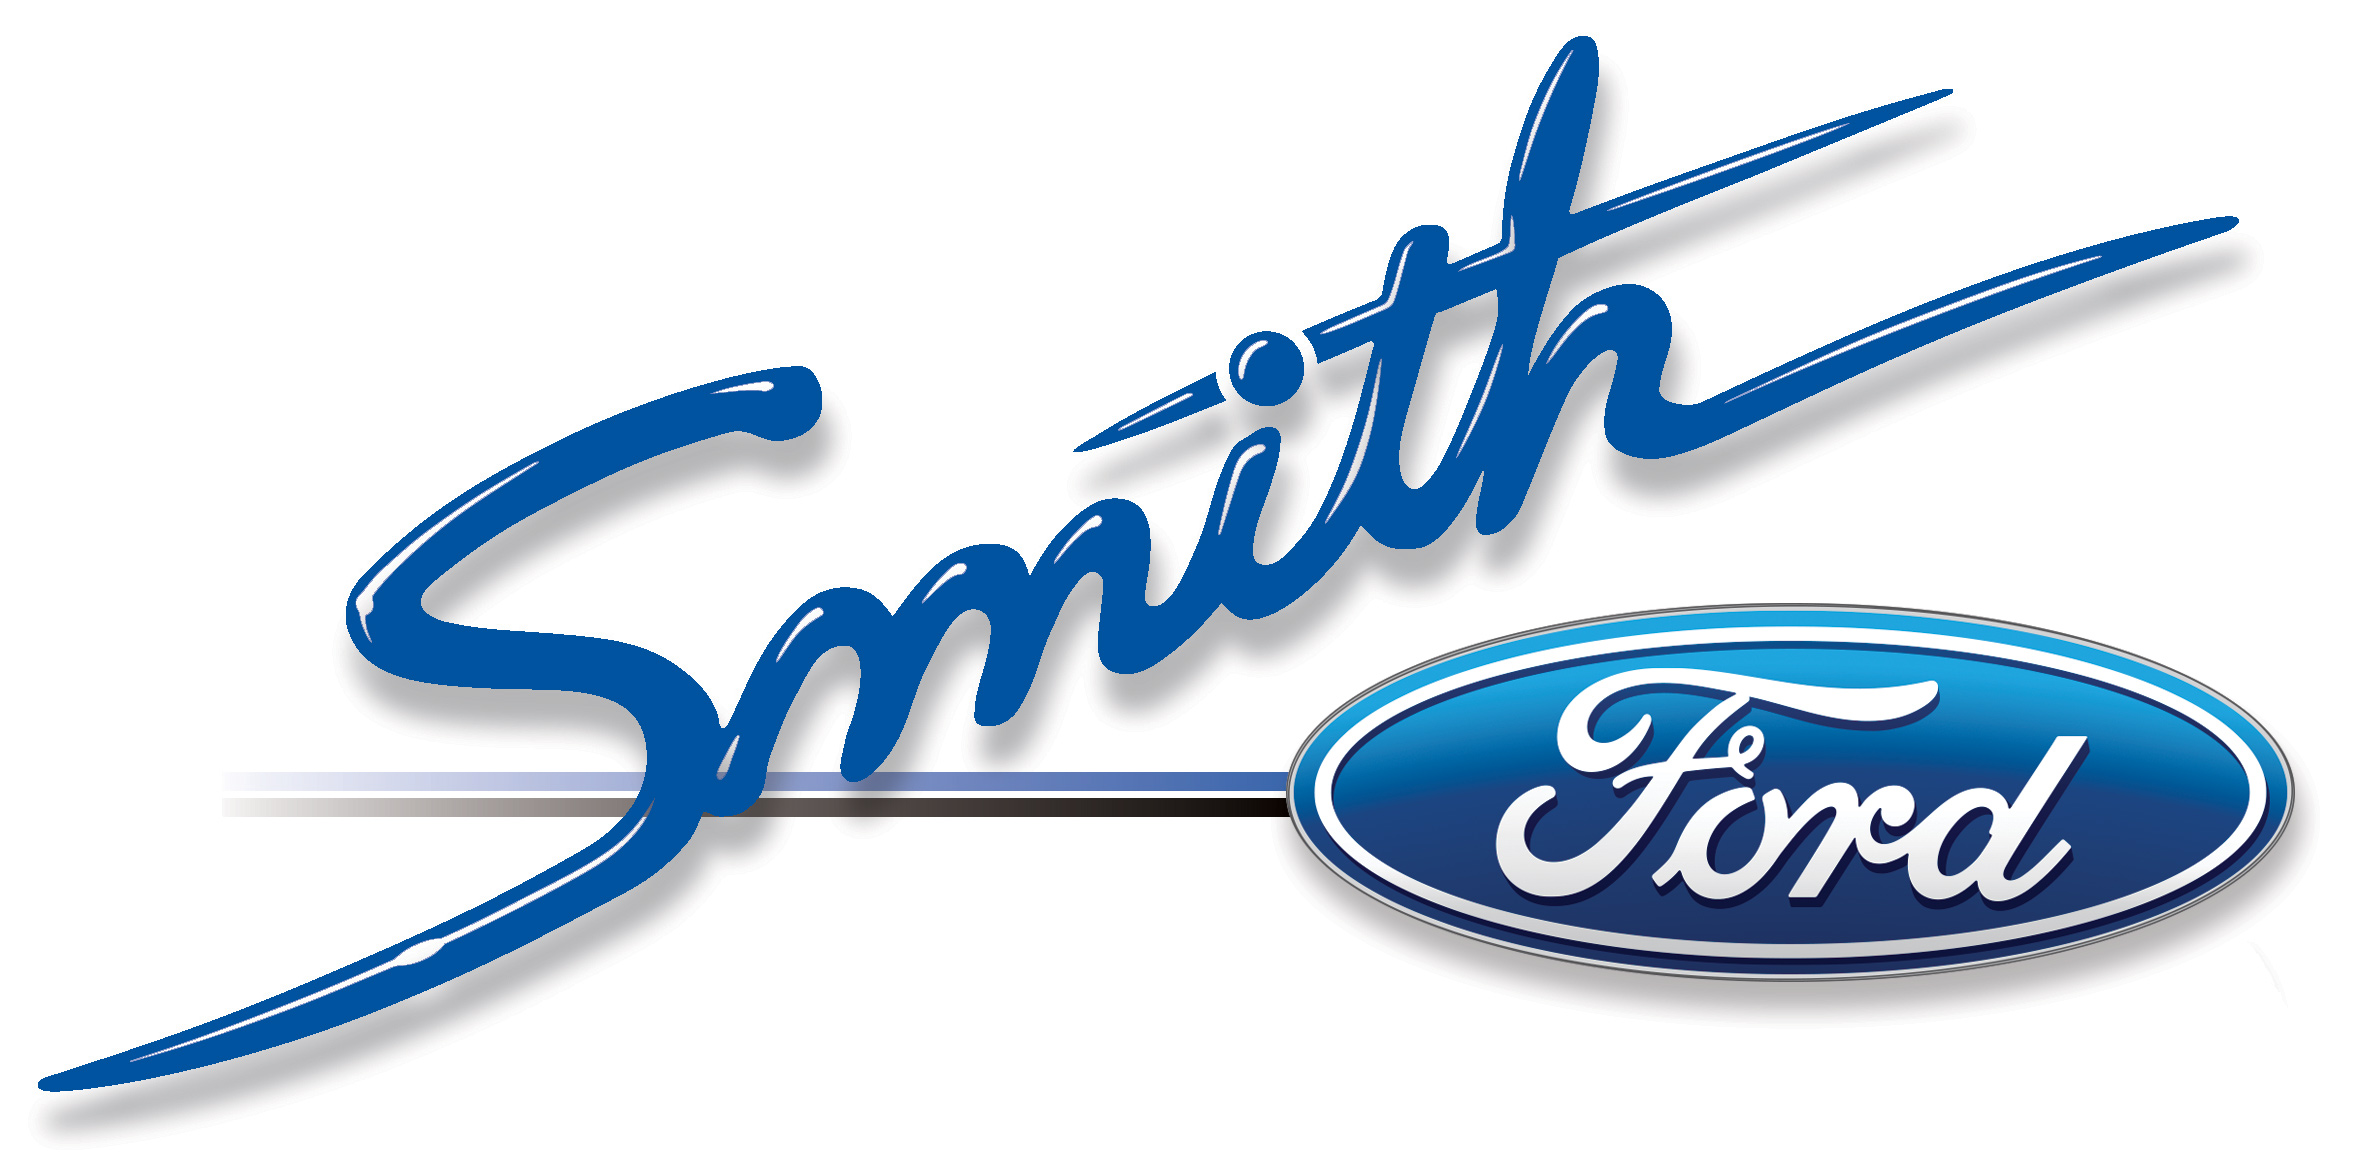 Smith Ford, Inc. logo